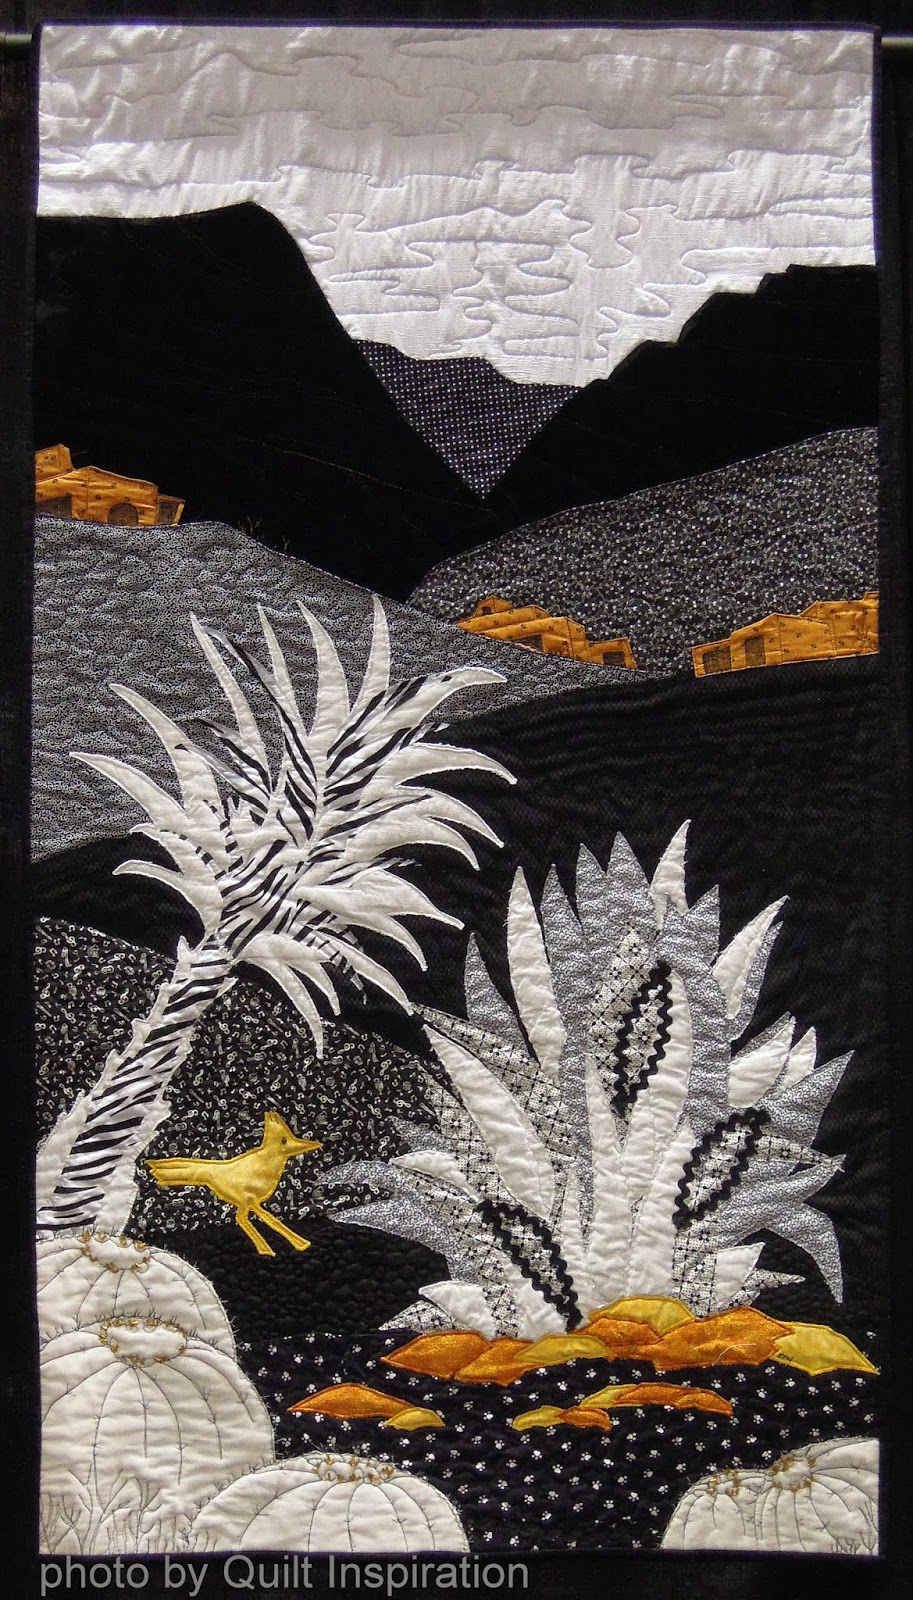 Black and white desert by eileen wintemute 2013 piqf we admire the graphic cactus shapes and the touches of golden yellow that enliven this quilt